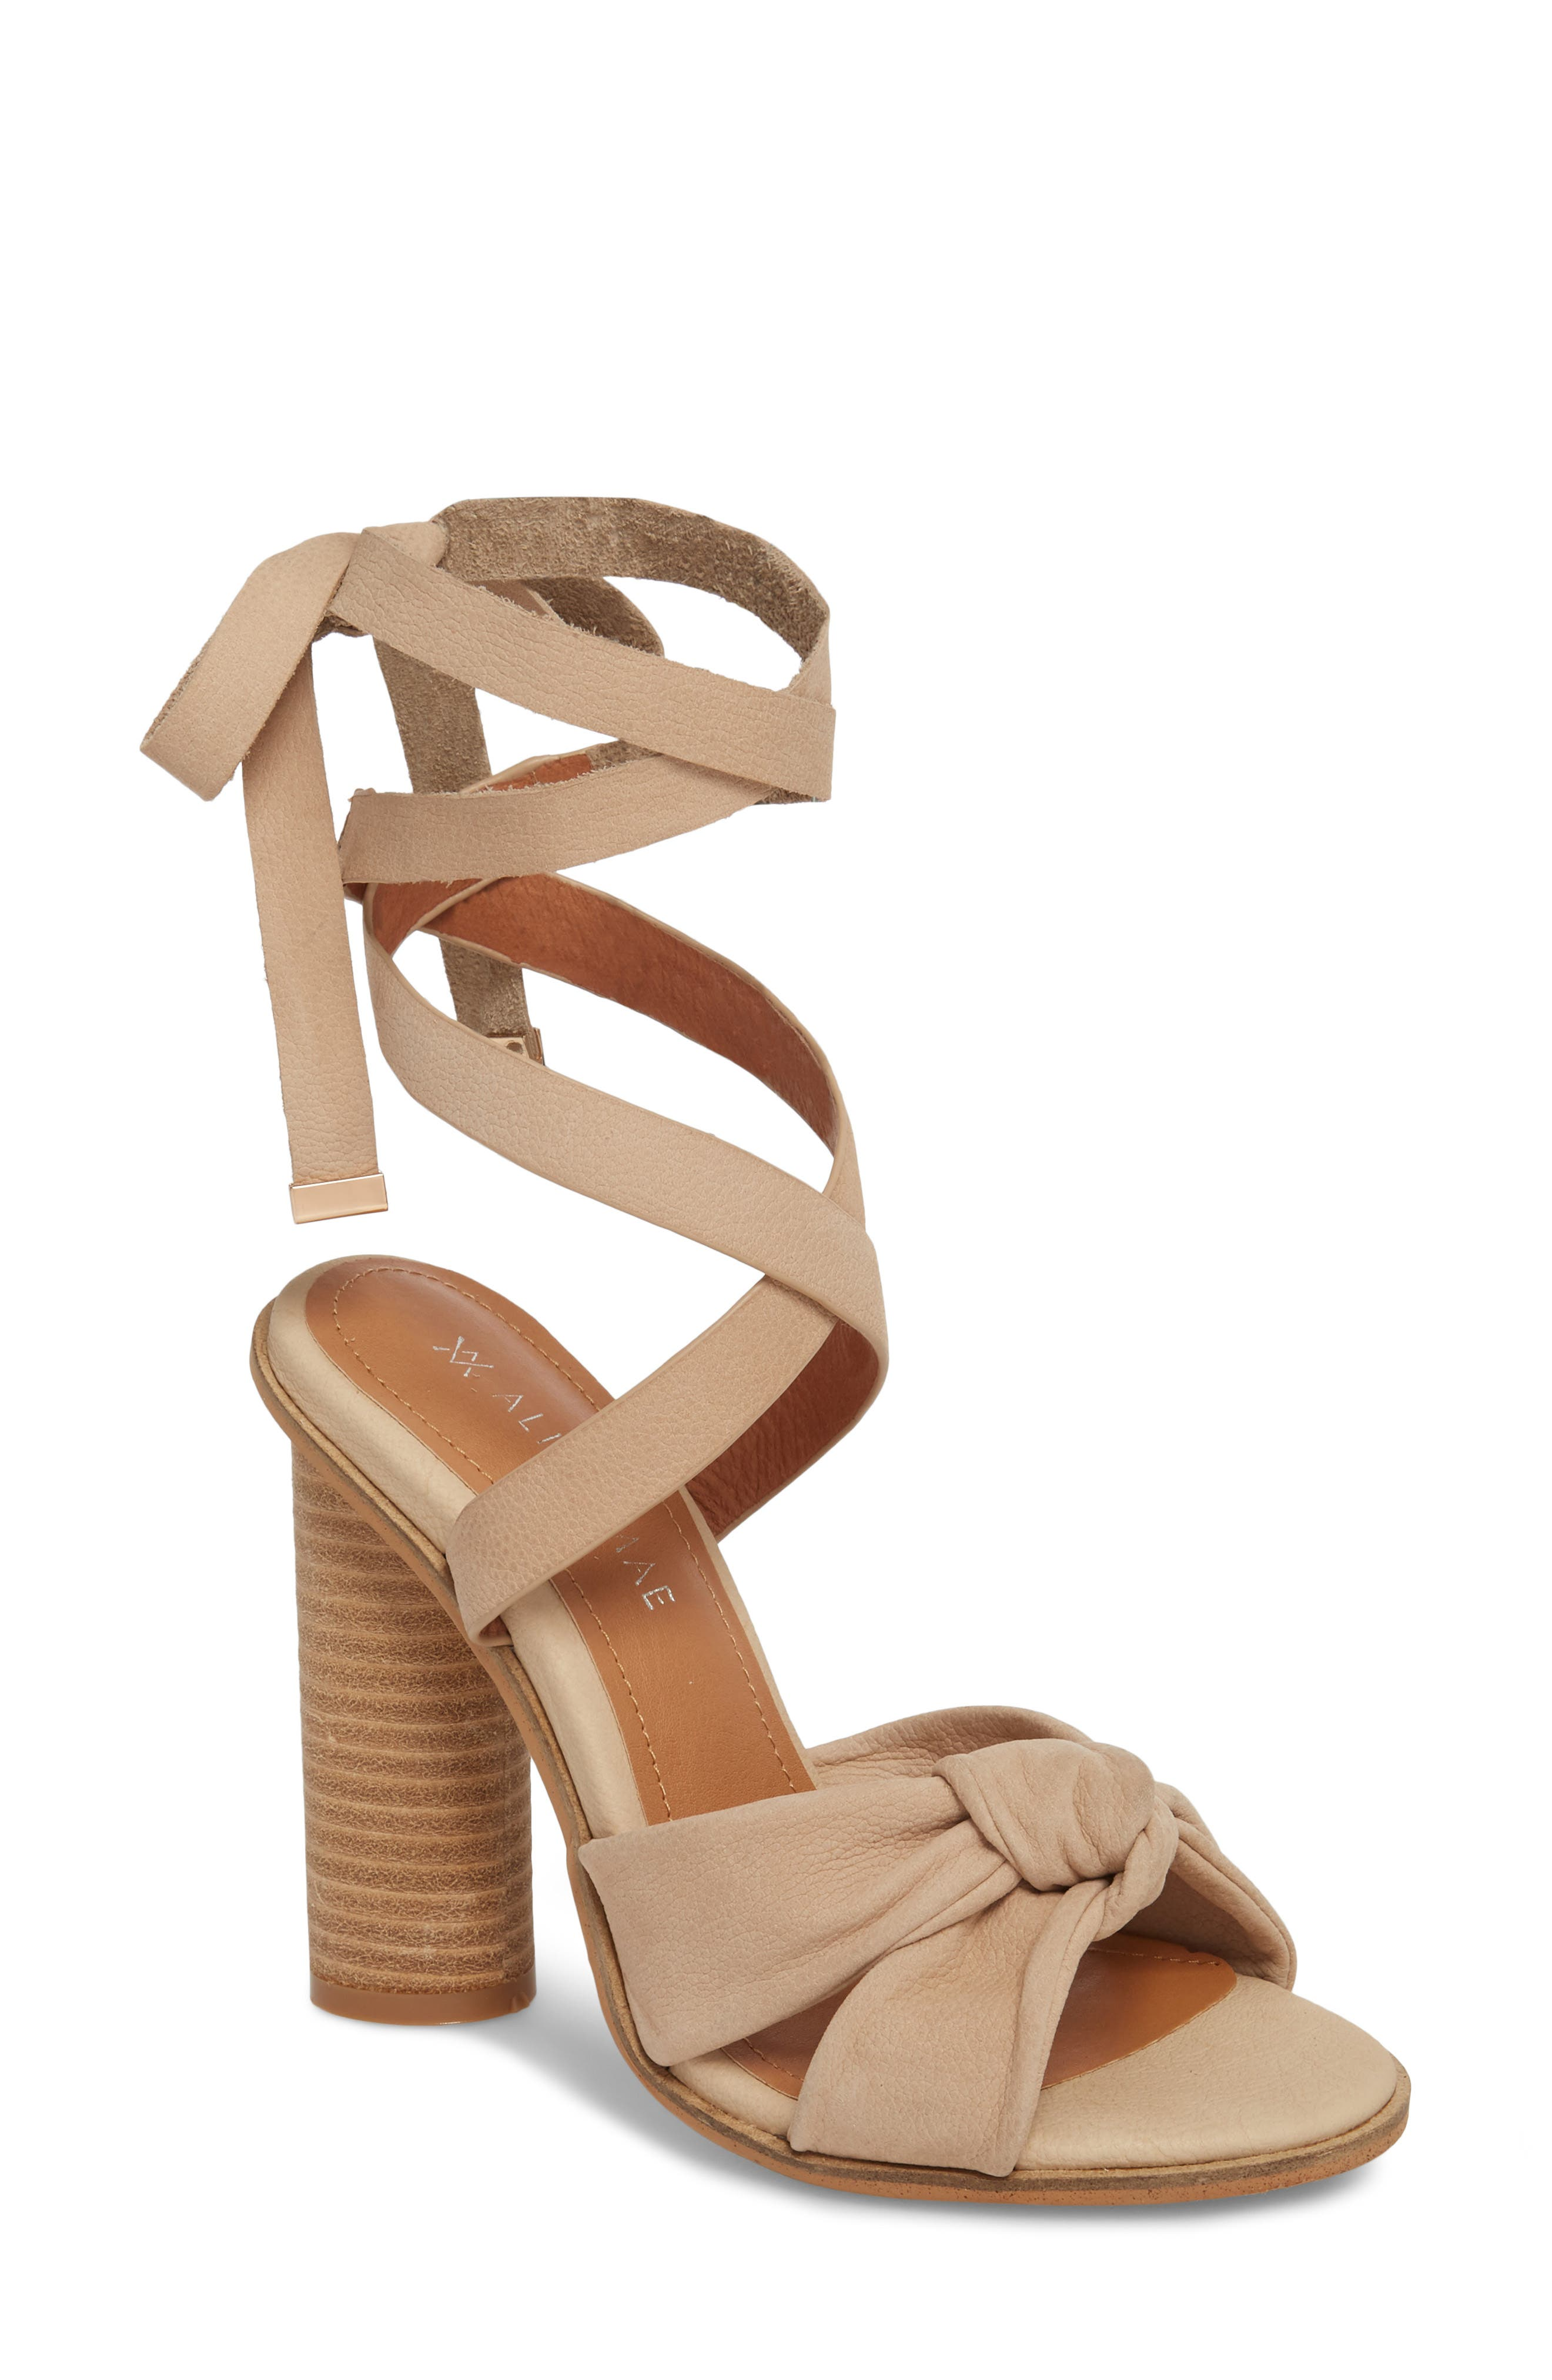 Africa Ankle Wrap Sandal,                         Main,                         color, Natural Leather